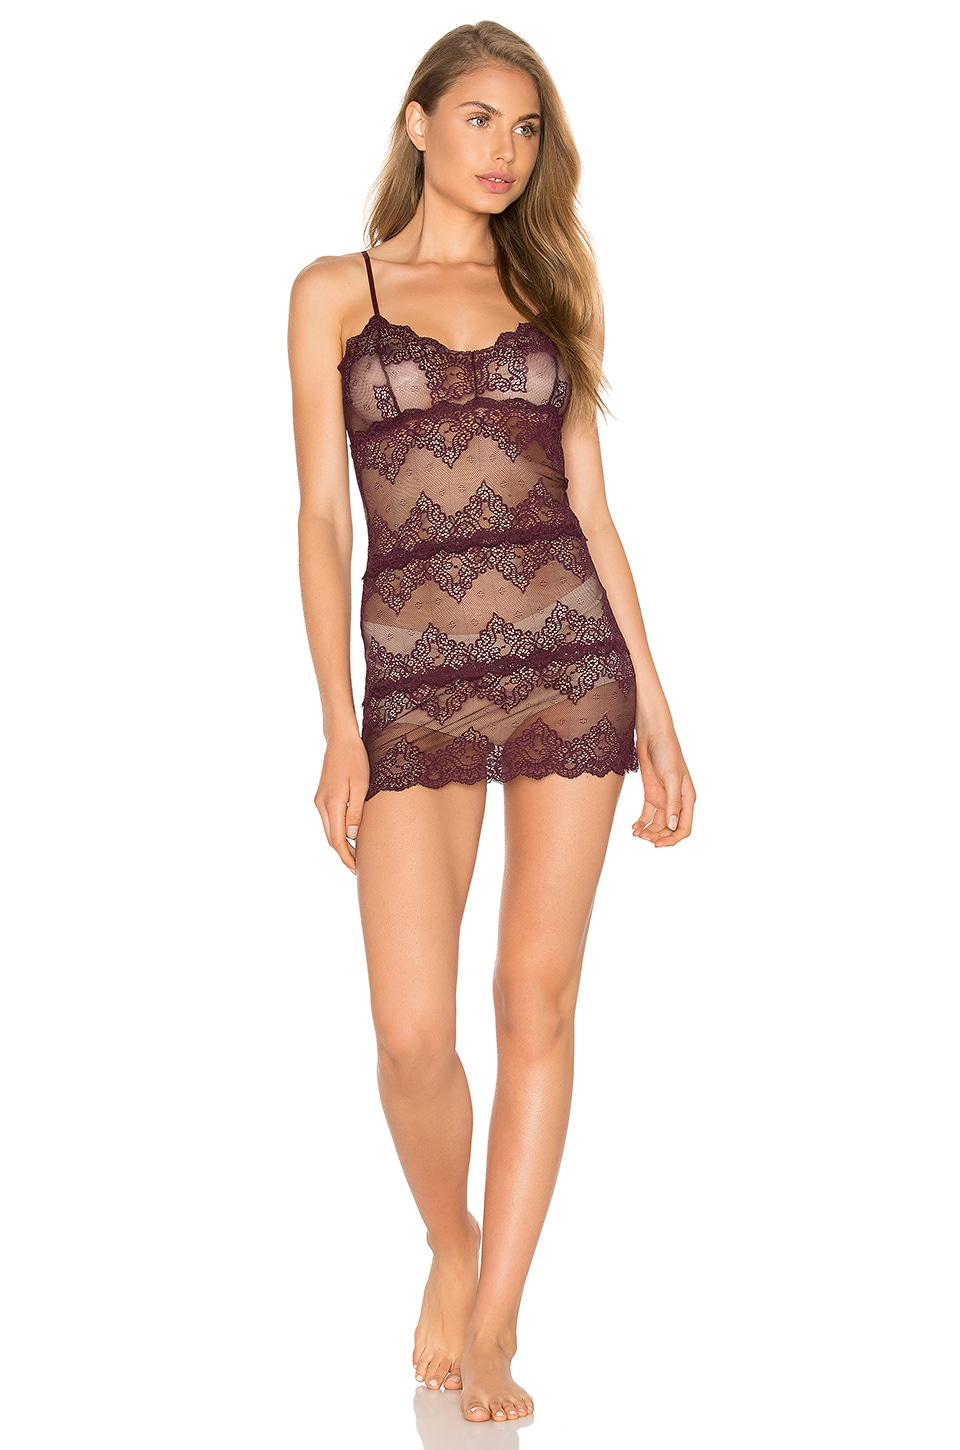 So Fine Lace Chemette by Only Hearts